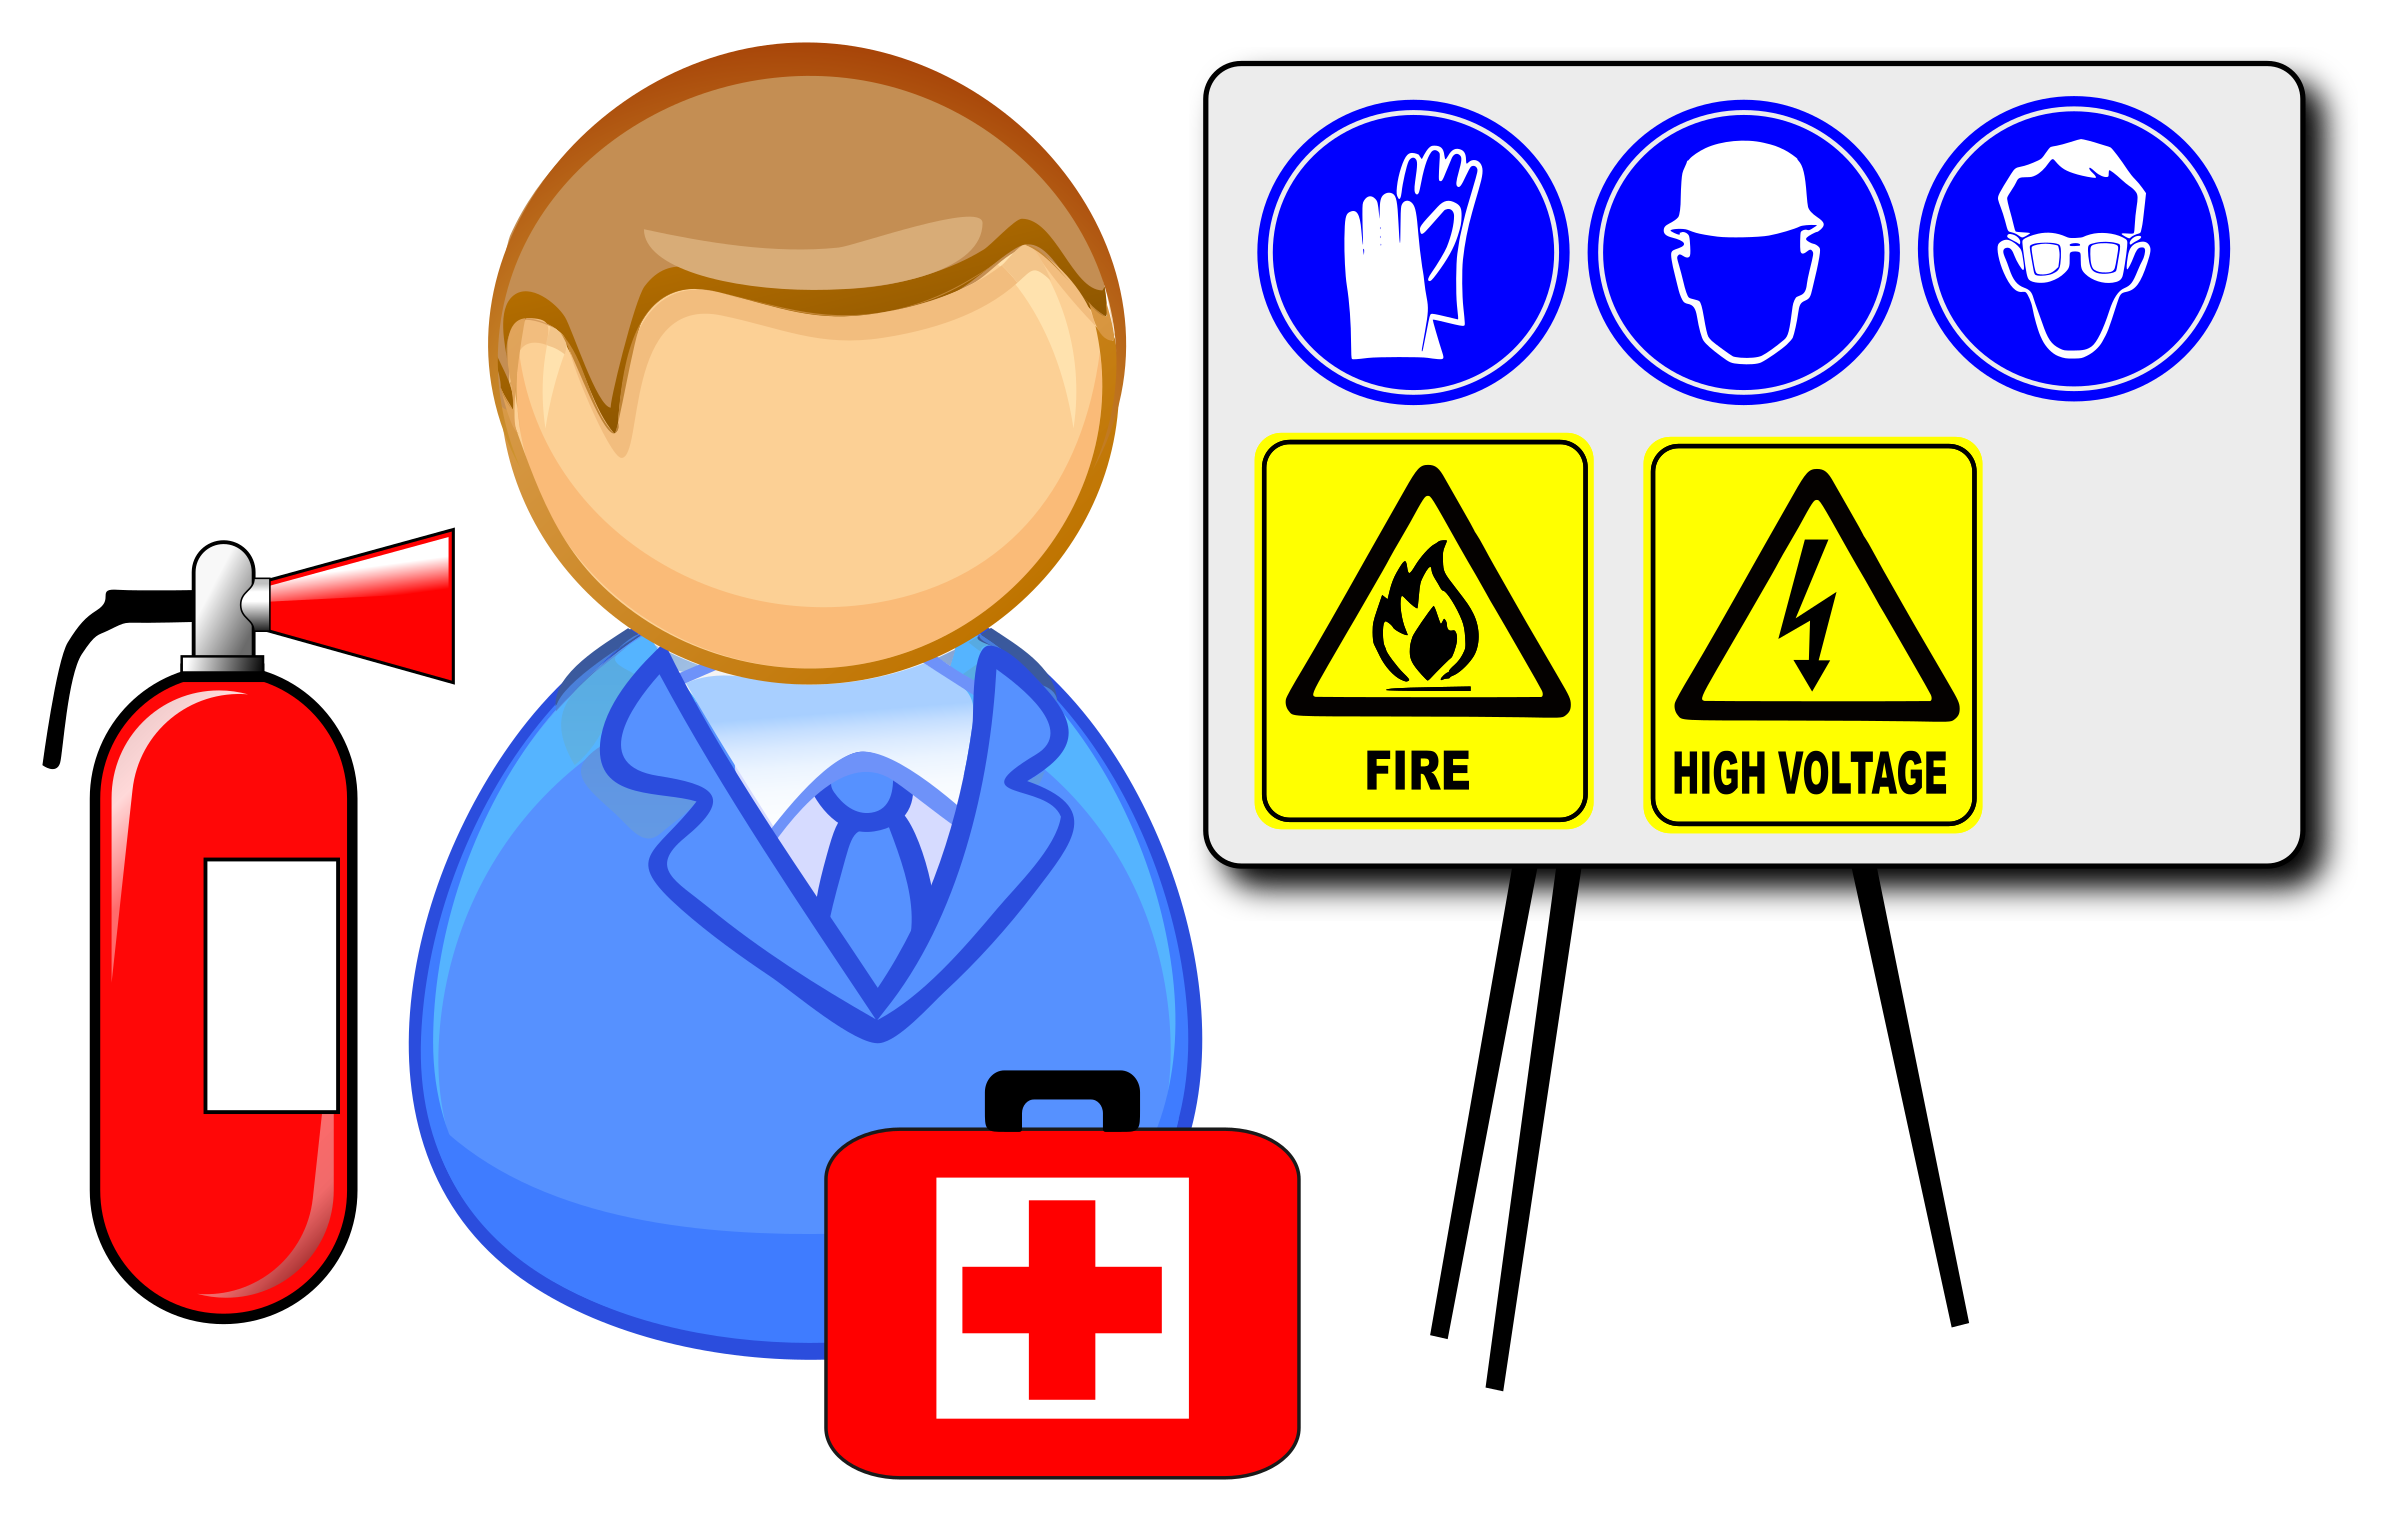 Health and safety clipart clipart images gallery for free.